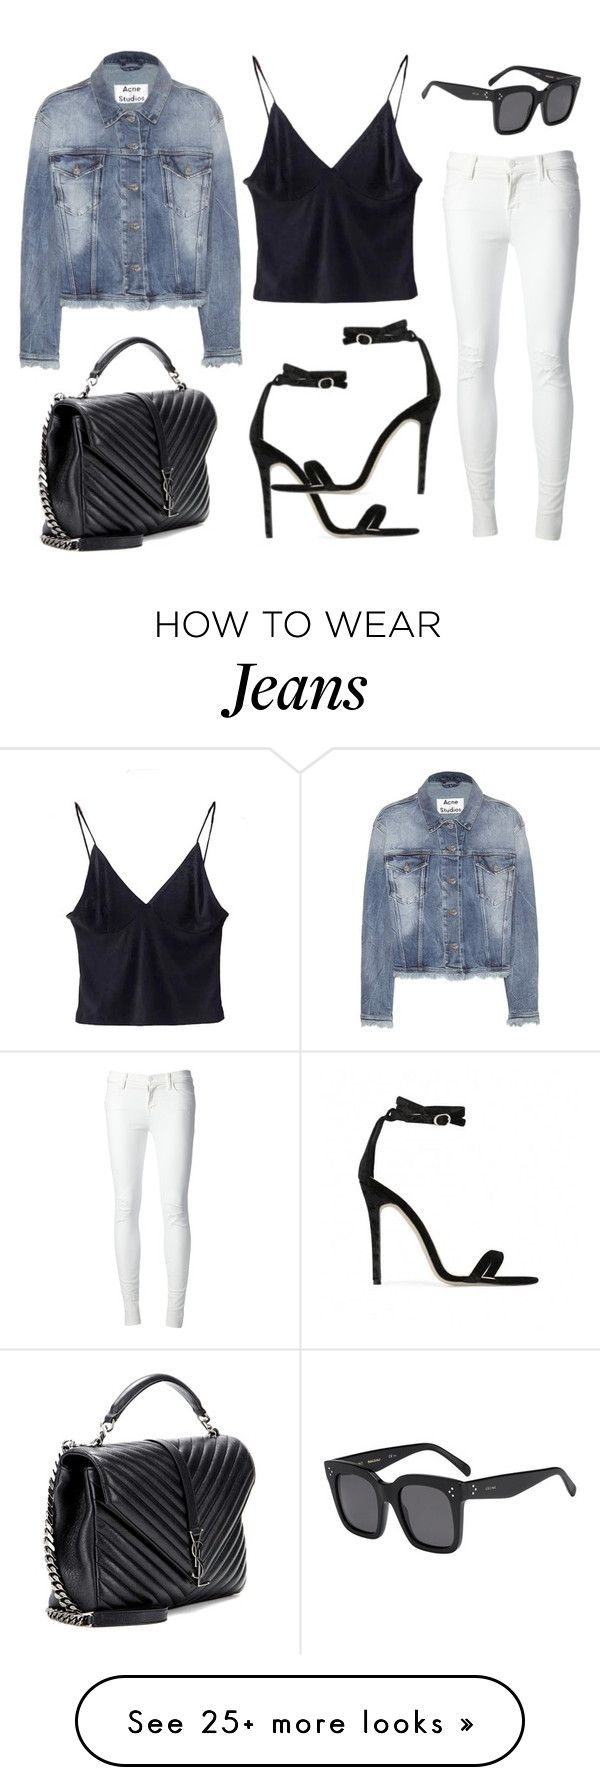 """Untitled #20896"" by florencia95 on Polyvore featuring J Brand, Yves Saint Laurent, Acne Studios, CÉLINE and Baldwin"